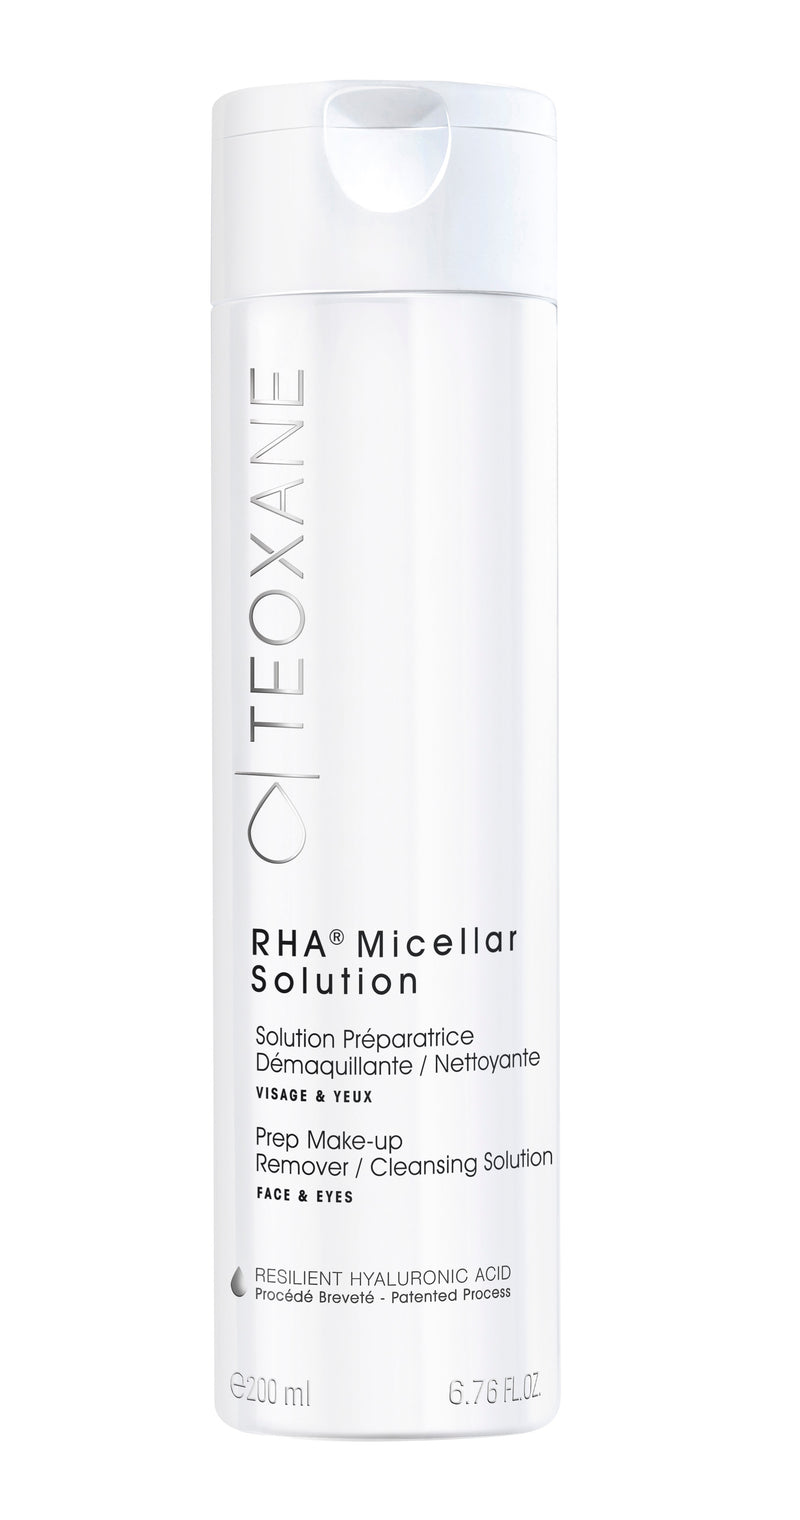 Teoxane RHA Micellar Solution